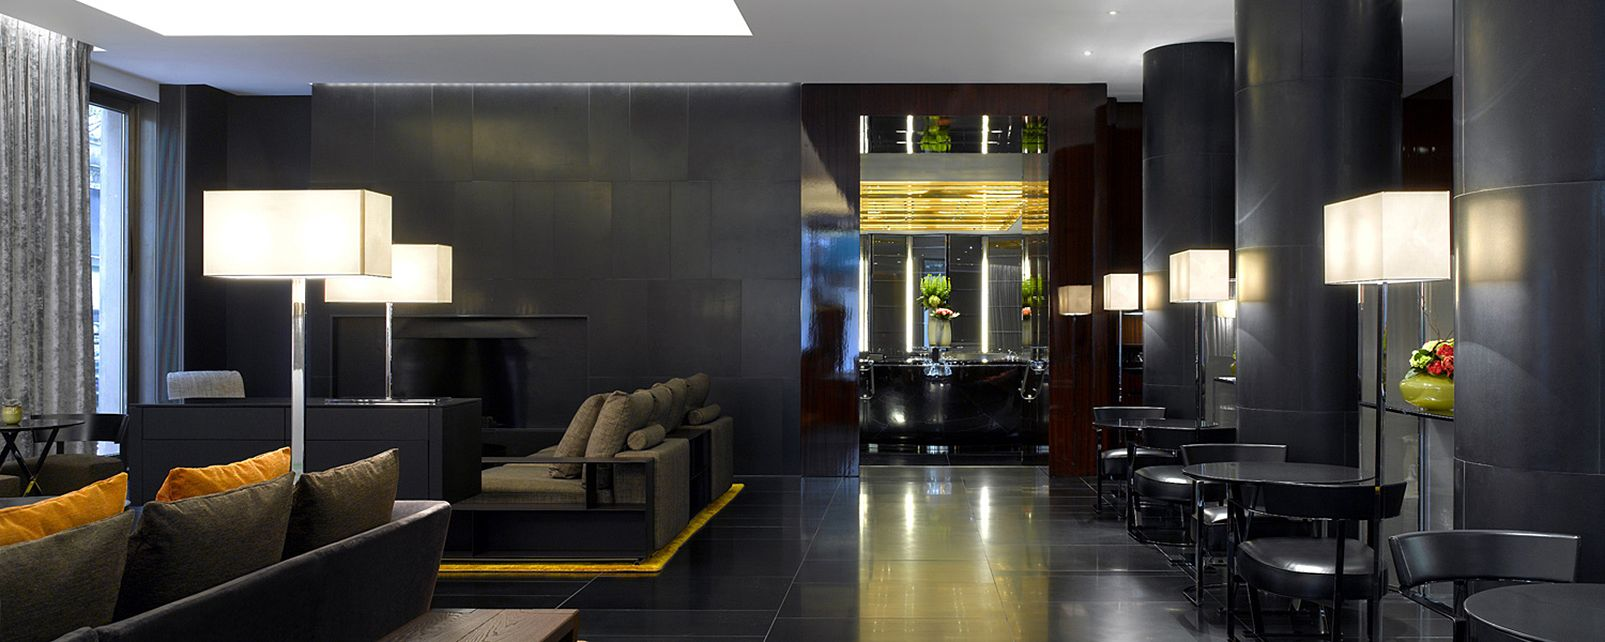 Hôtel Bulgari London